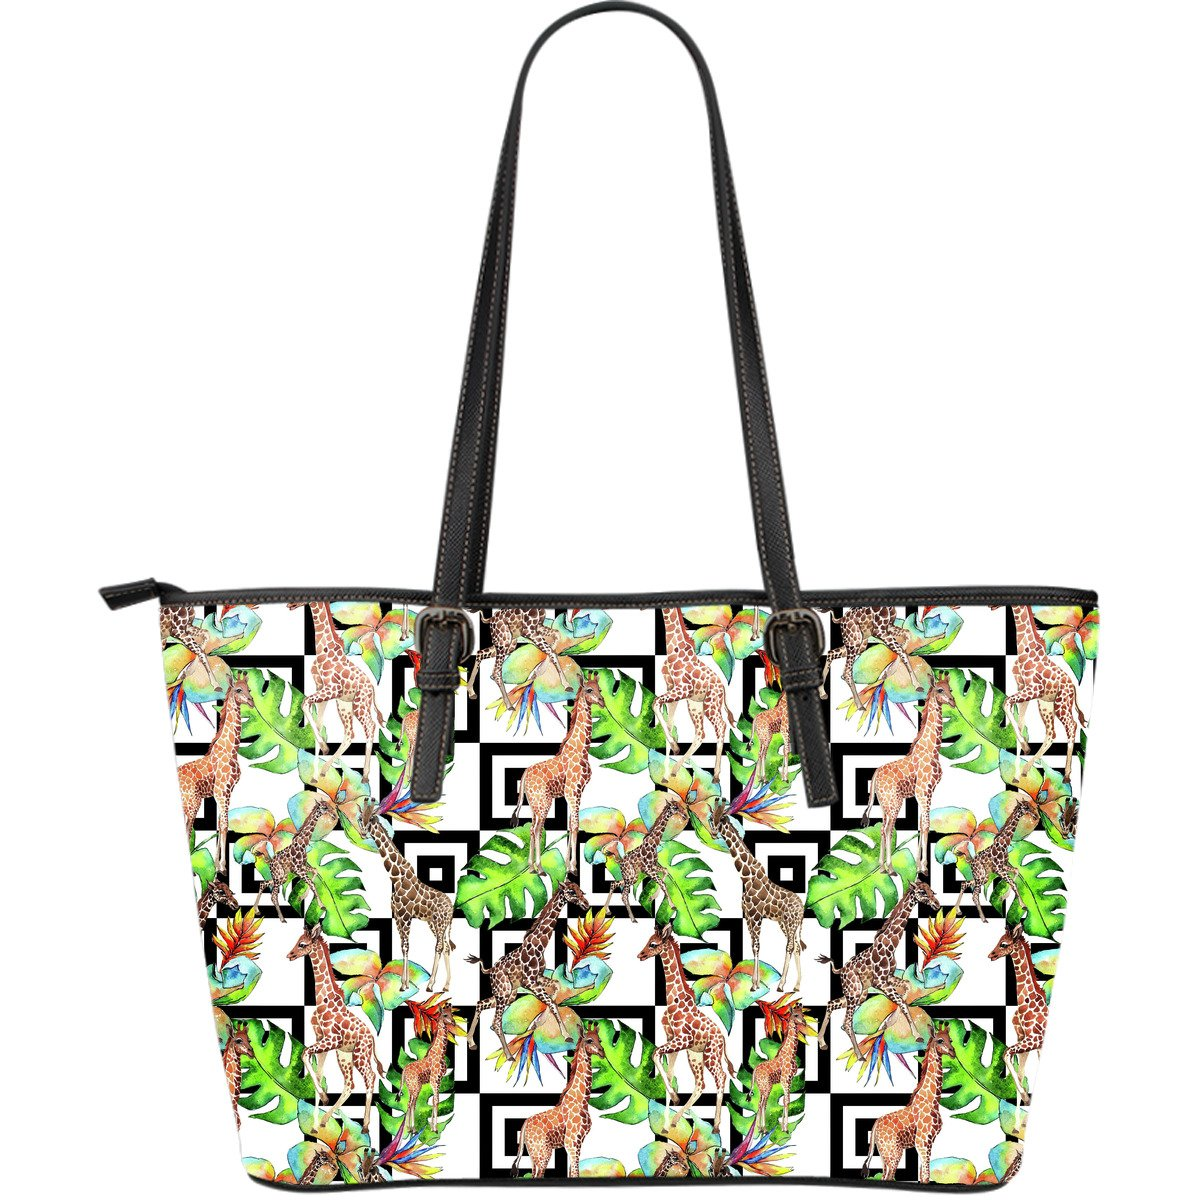 Exotic Tropical Giraffe Pattern Print Leather Tote Bag GearFrost